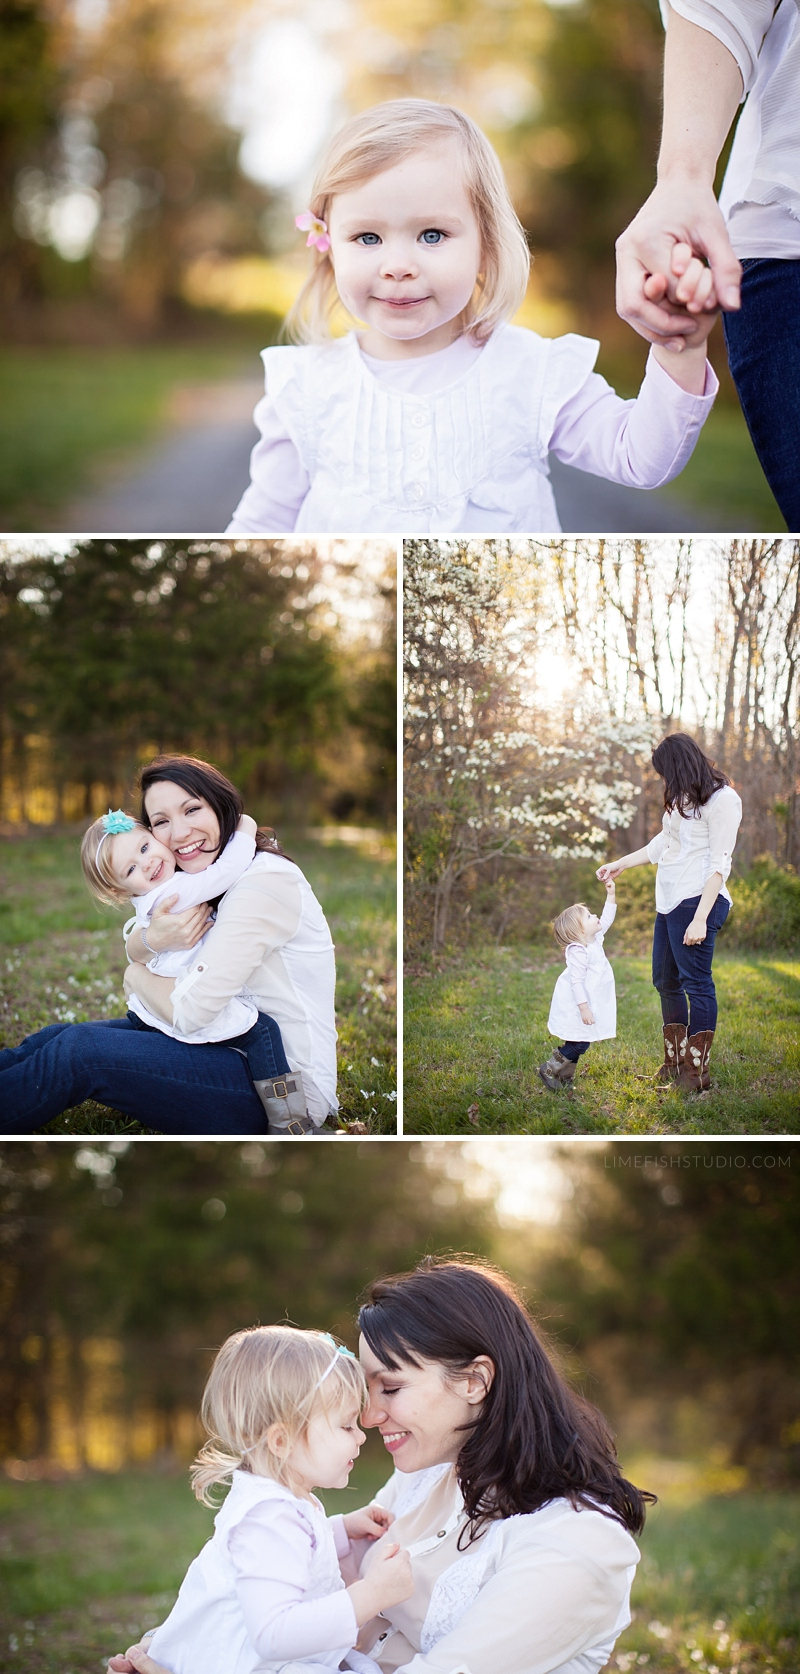 Limefish Studio Photography - Mommy & Me Session - Lake Monticello